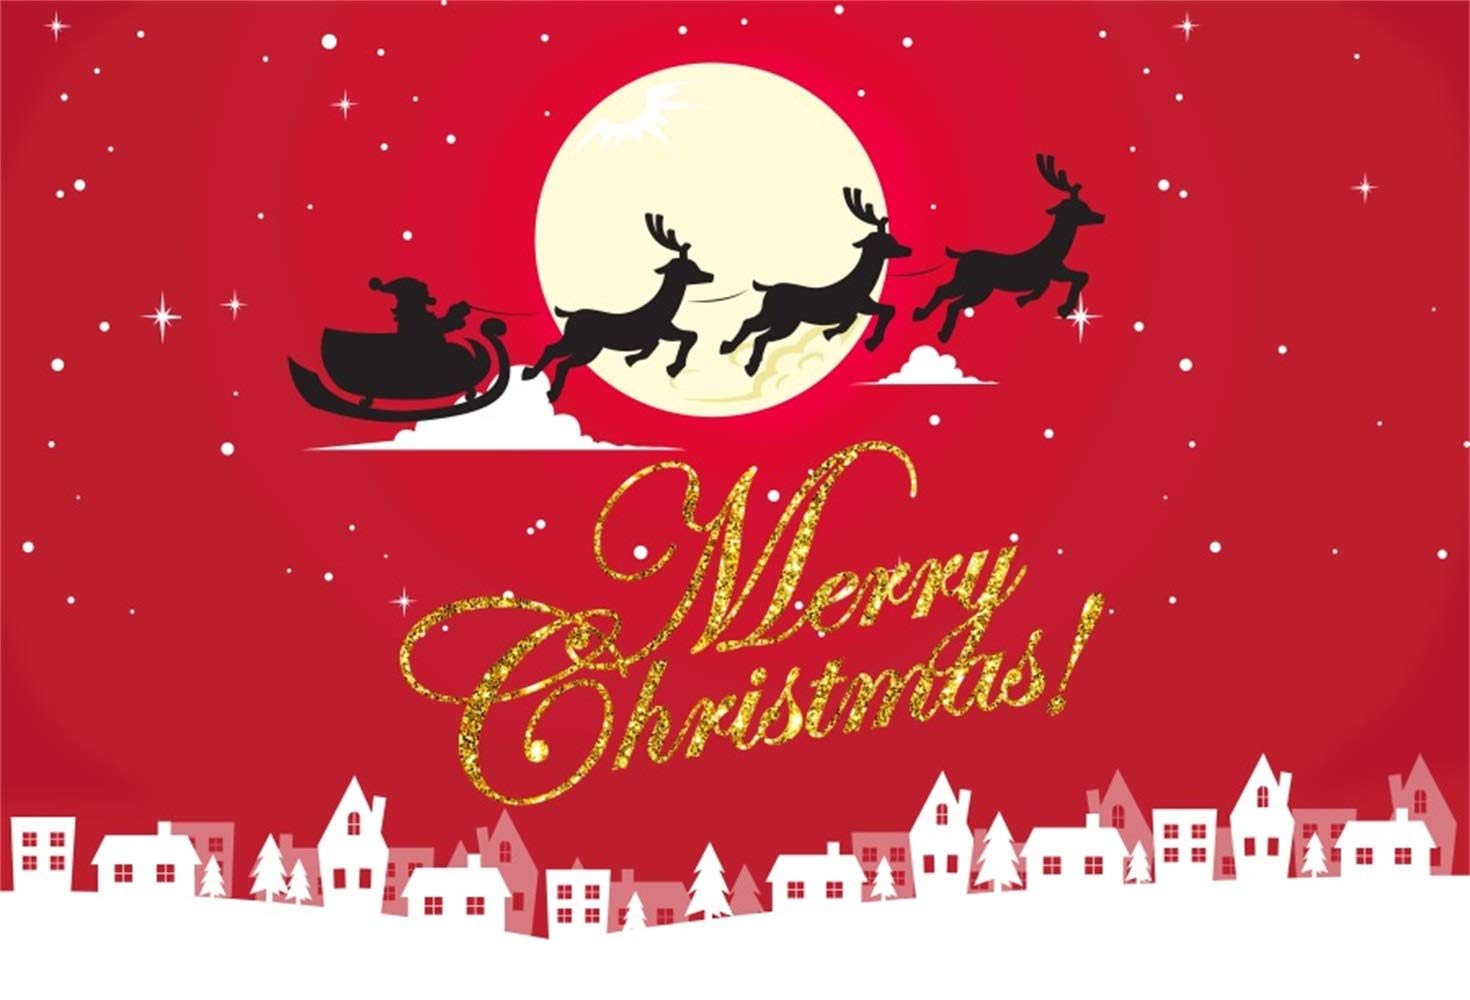 Laeacco Merry Christmas Backdrop Vinyl 10x6.5ft Santa Claus Drive The Reindeers Across The Full Moon Red Starry Sky White Houses Edge Background New Year's Eve Xmas Party Banner Child Baby Adult Shoot